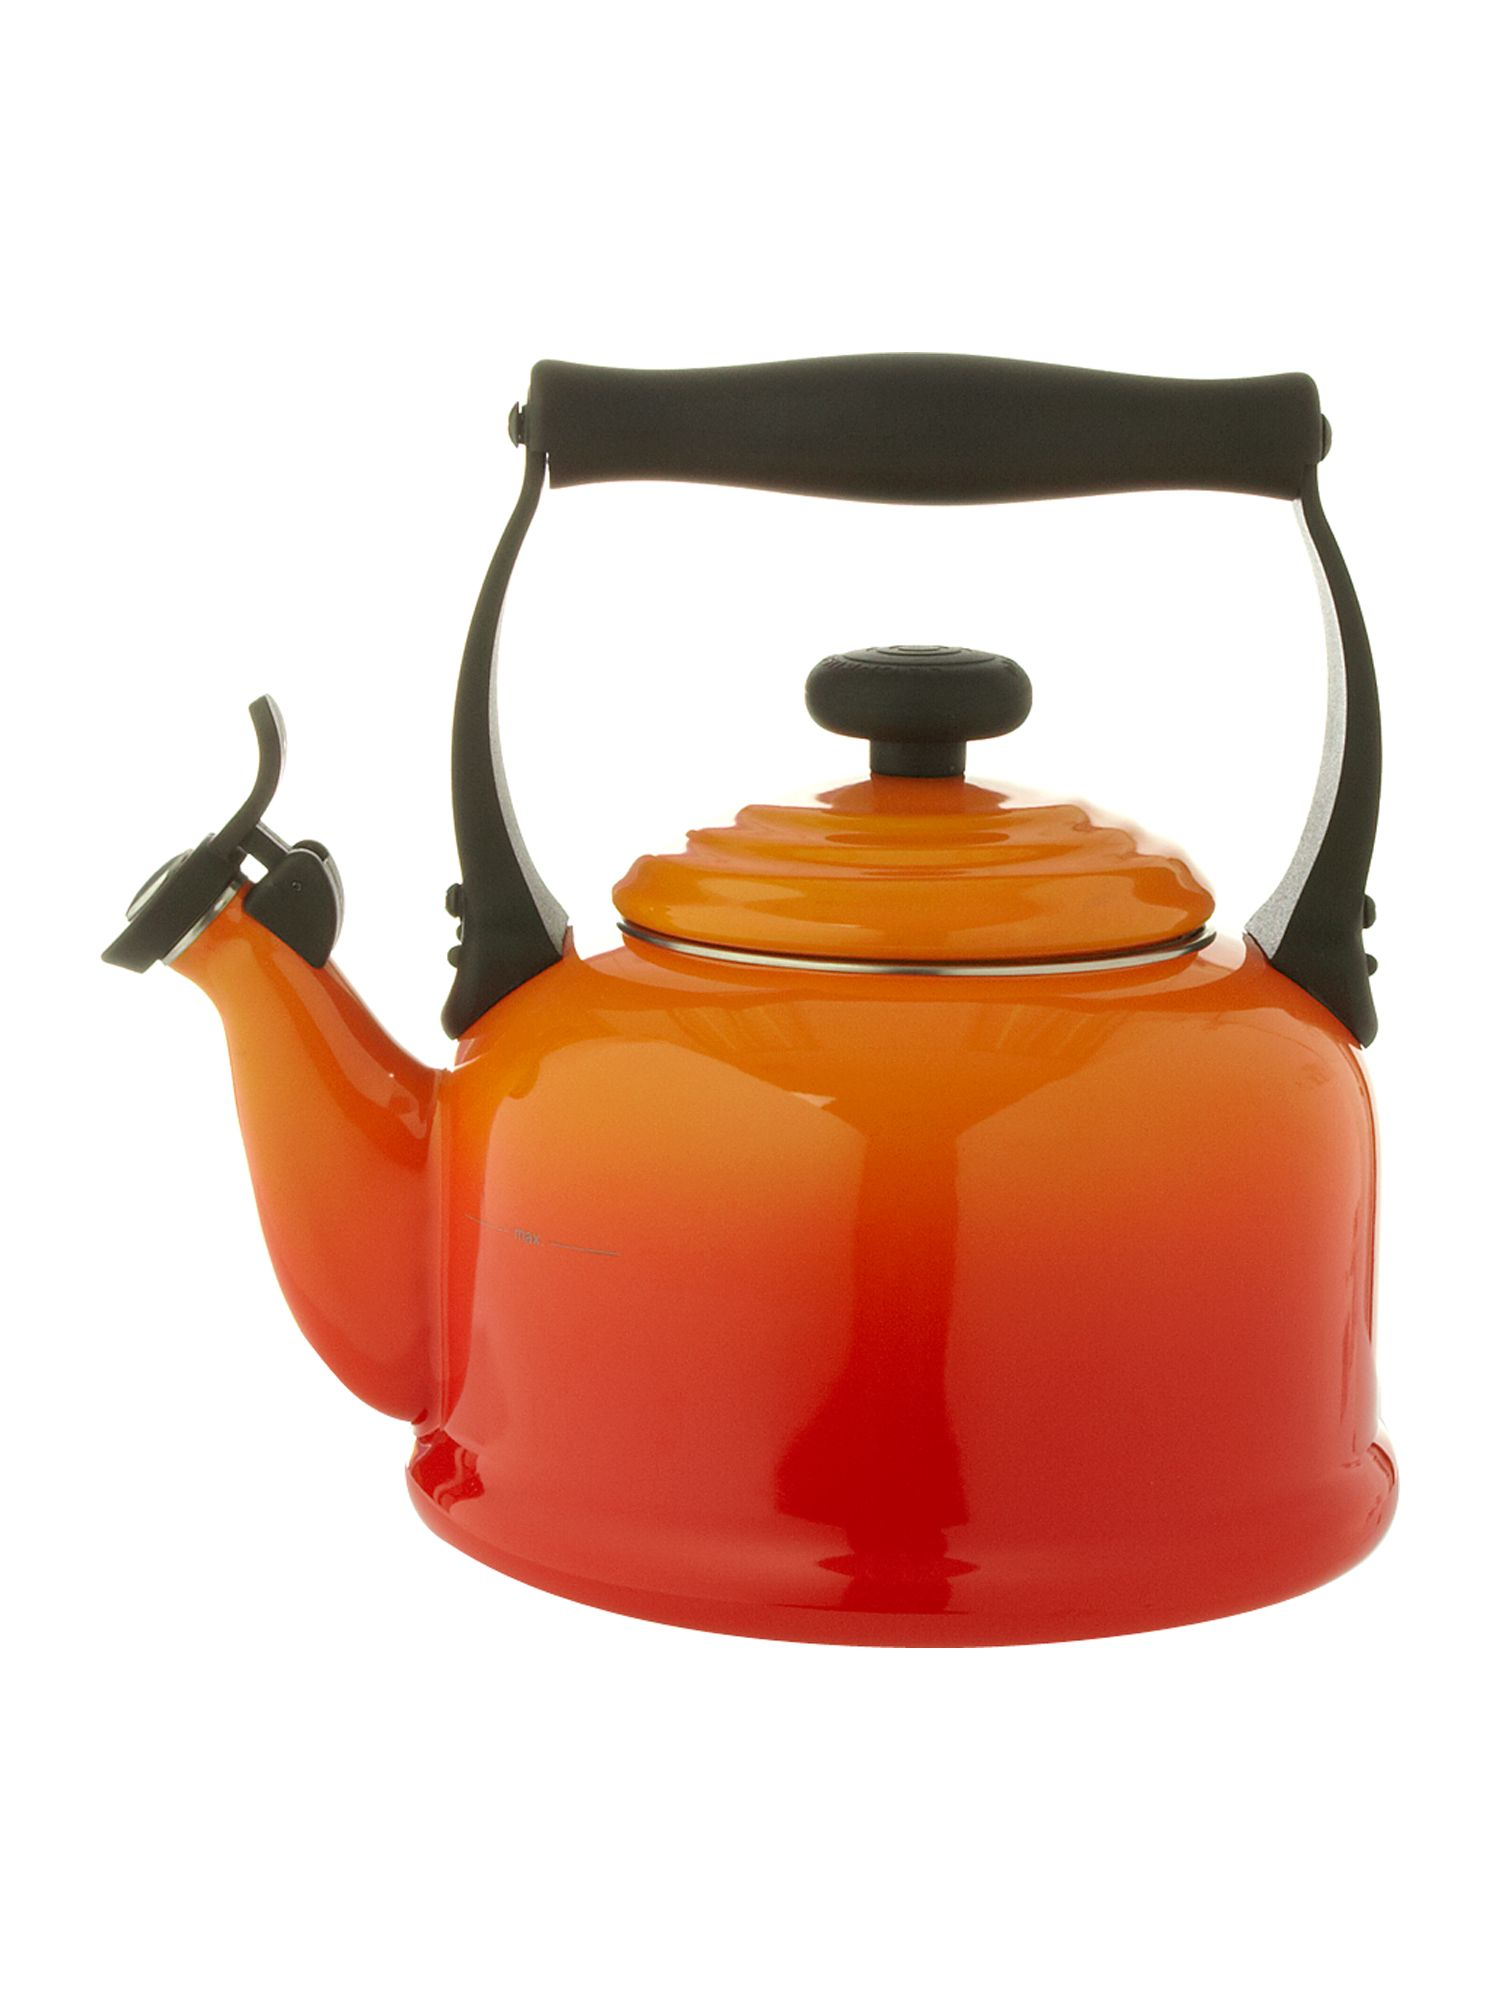 Le Creuset 2.1L Traditional Kettle Volcanic